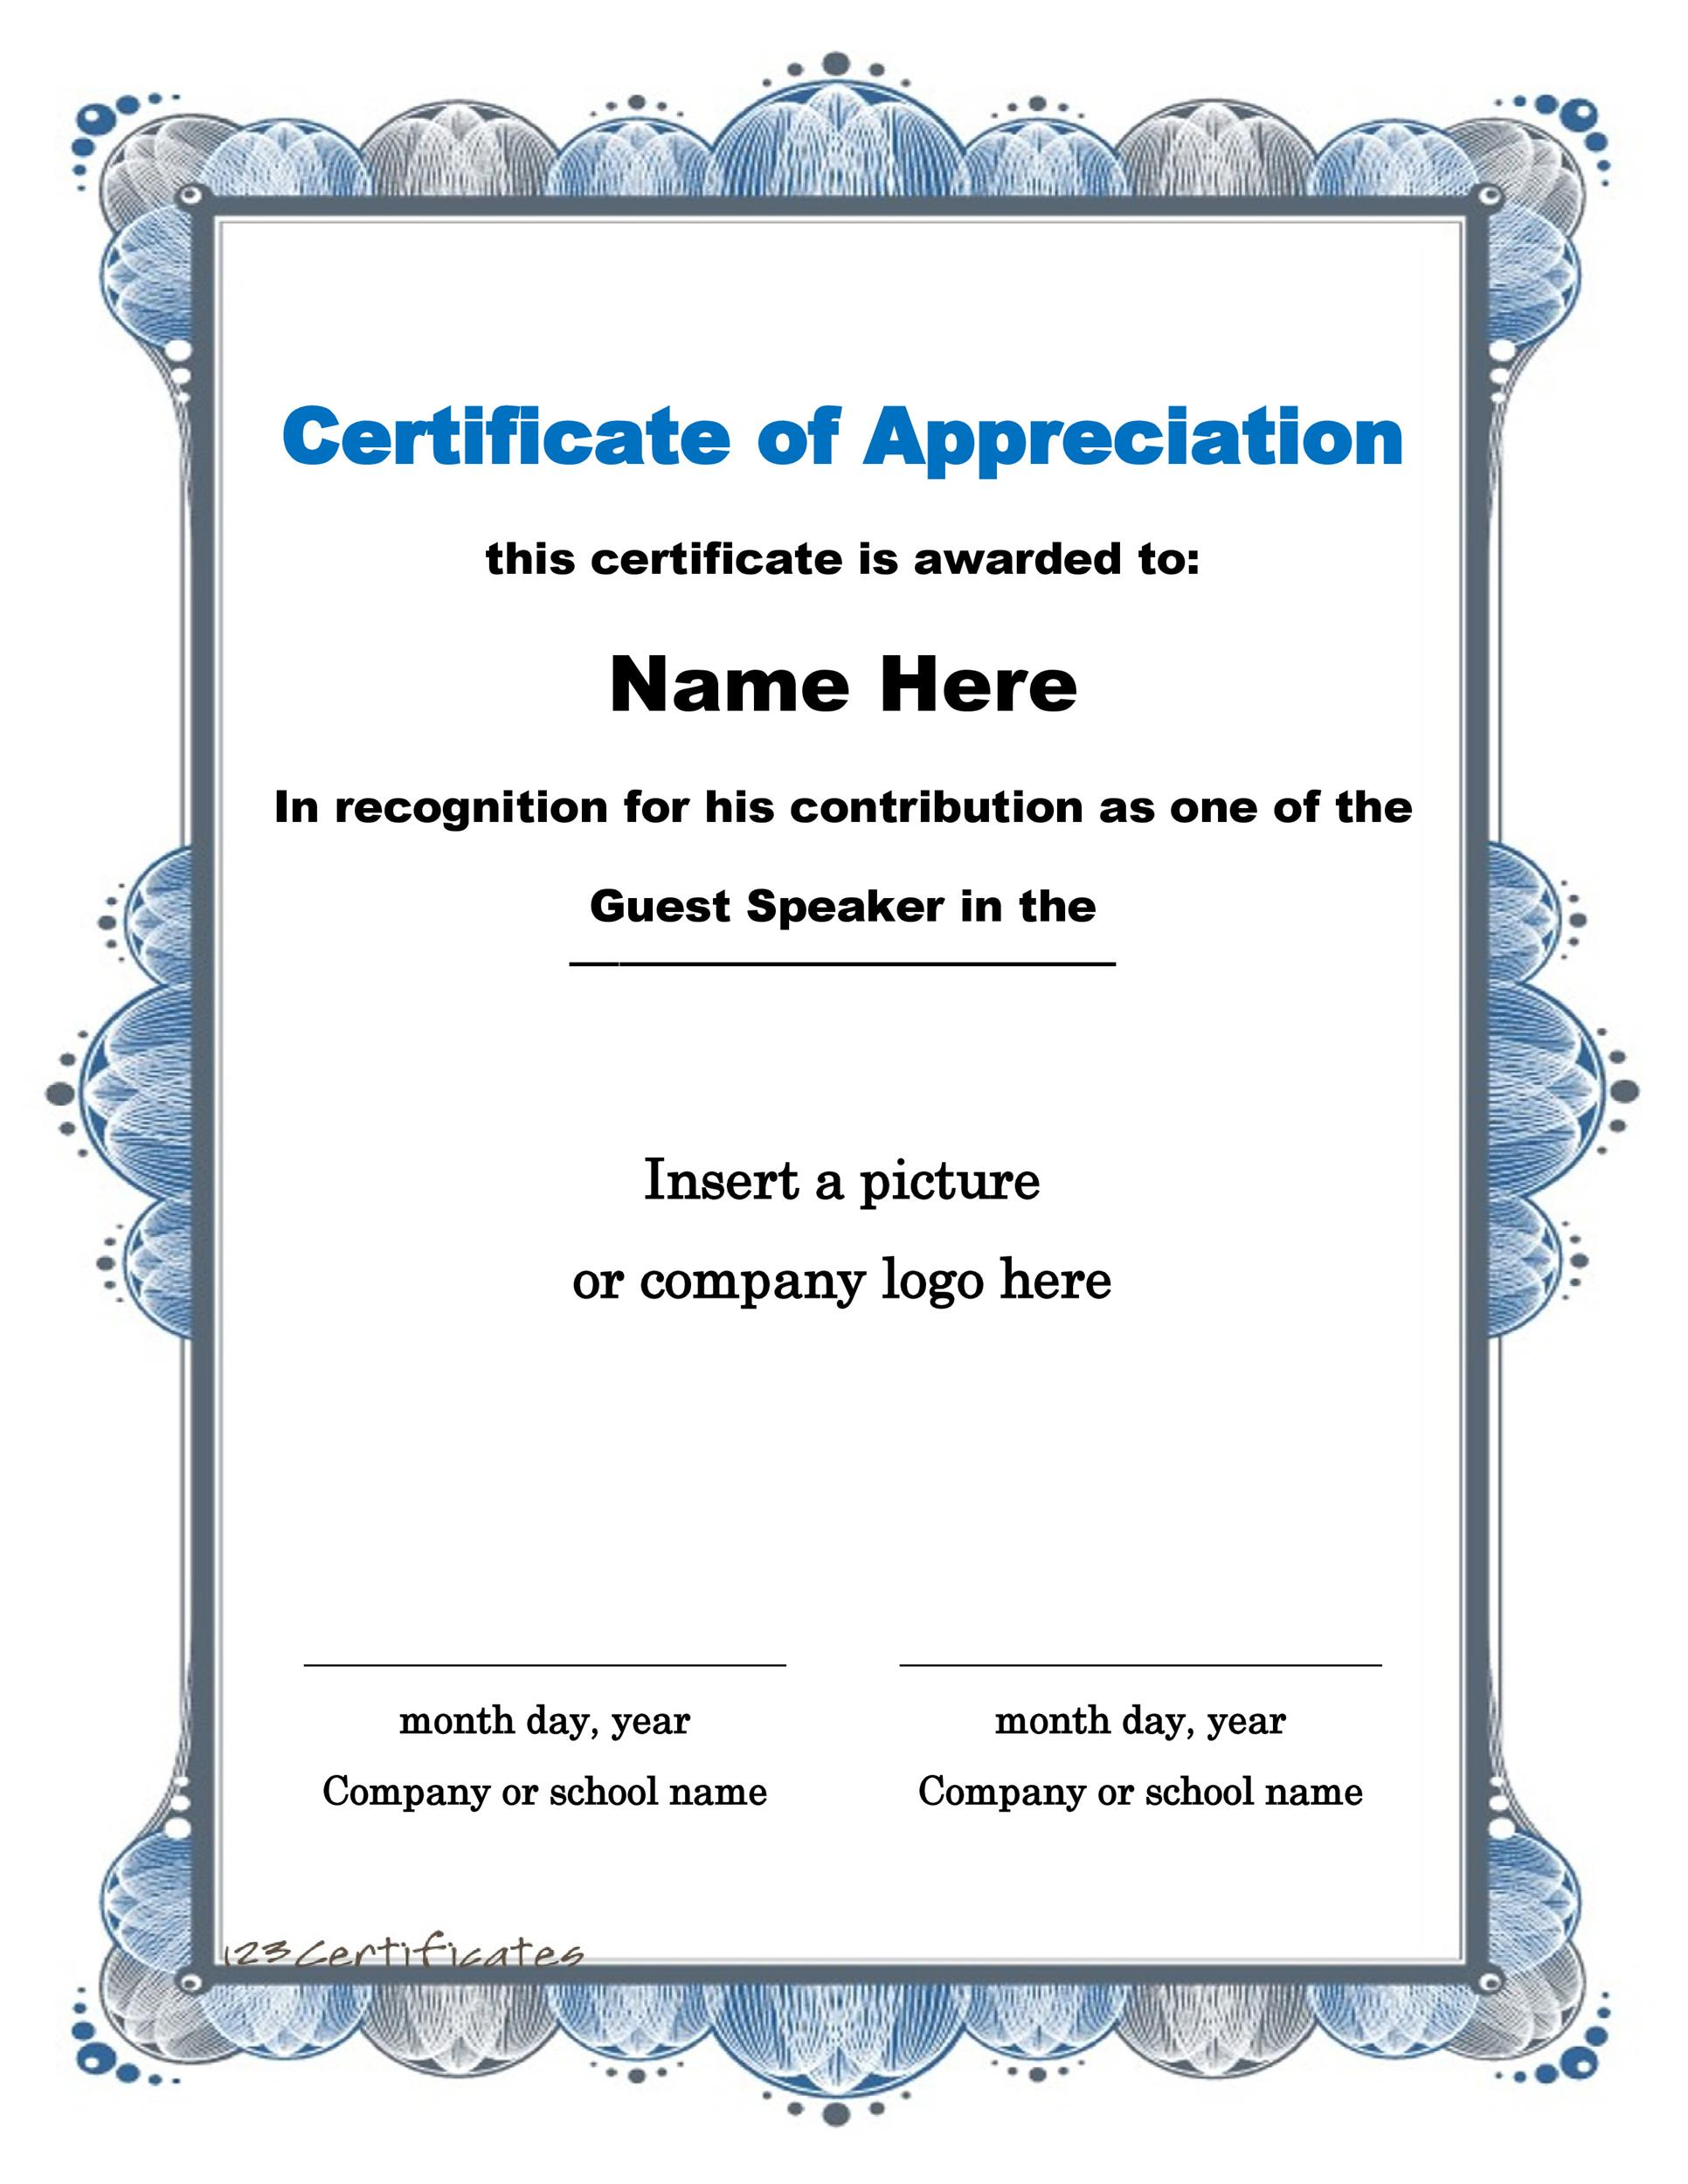 30 free certificate of appreciation templates and letters yelopaper Images